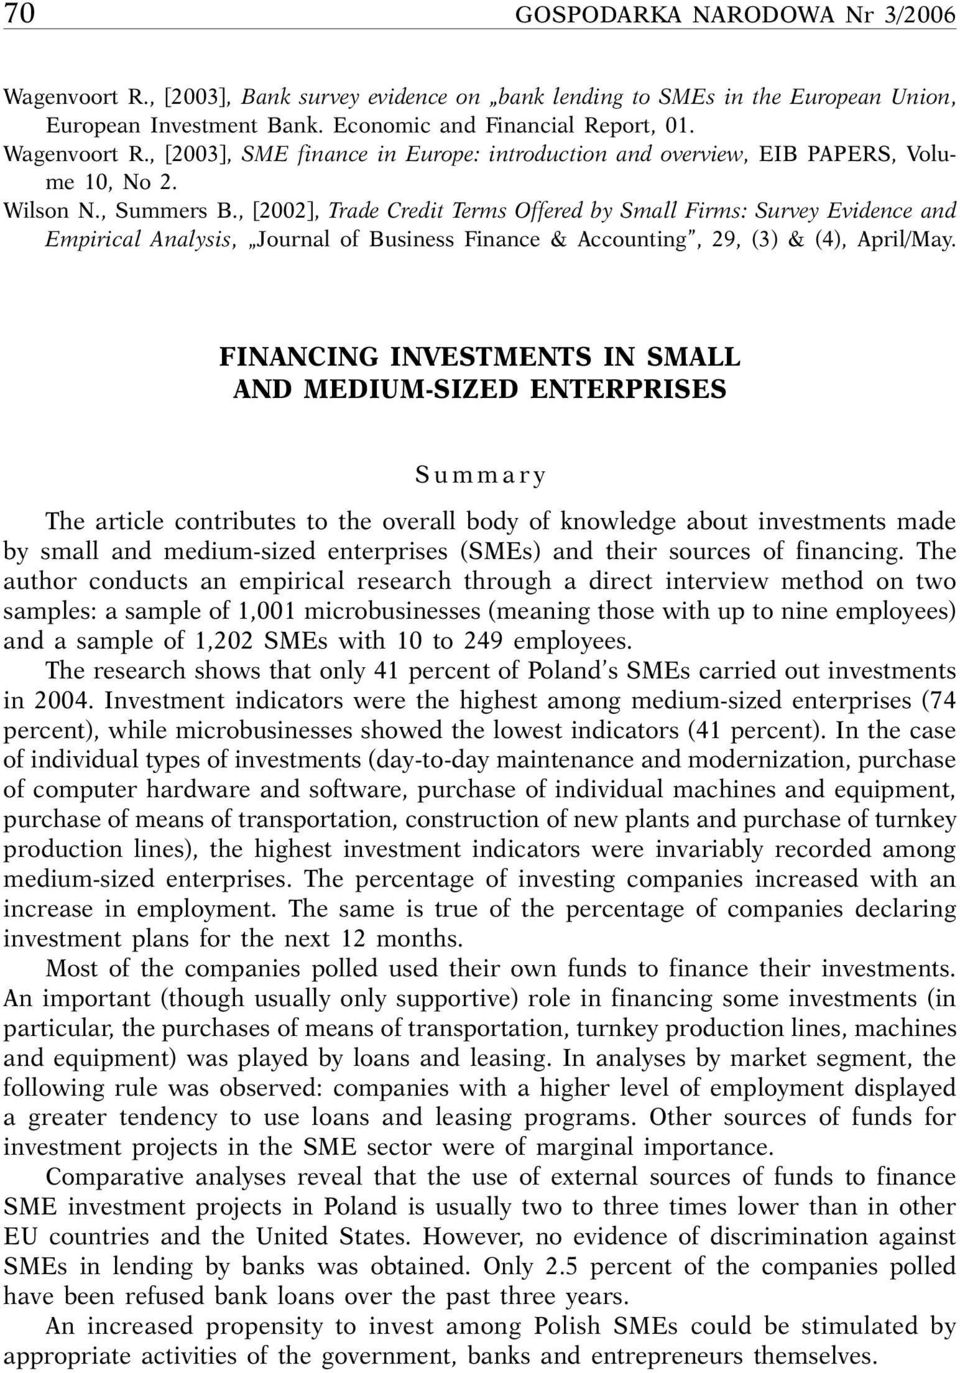 FINANCING INVESTMENTS IN SMALL AND MEDIUM-SIZED ENTERPRISES Summary The article contributes to the overall body of knowledge about investments made by small and medium-sized enterprises (SMEs) and